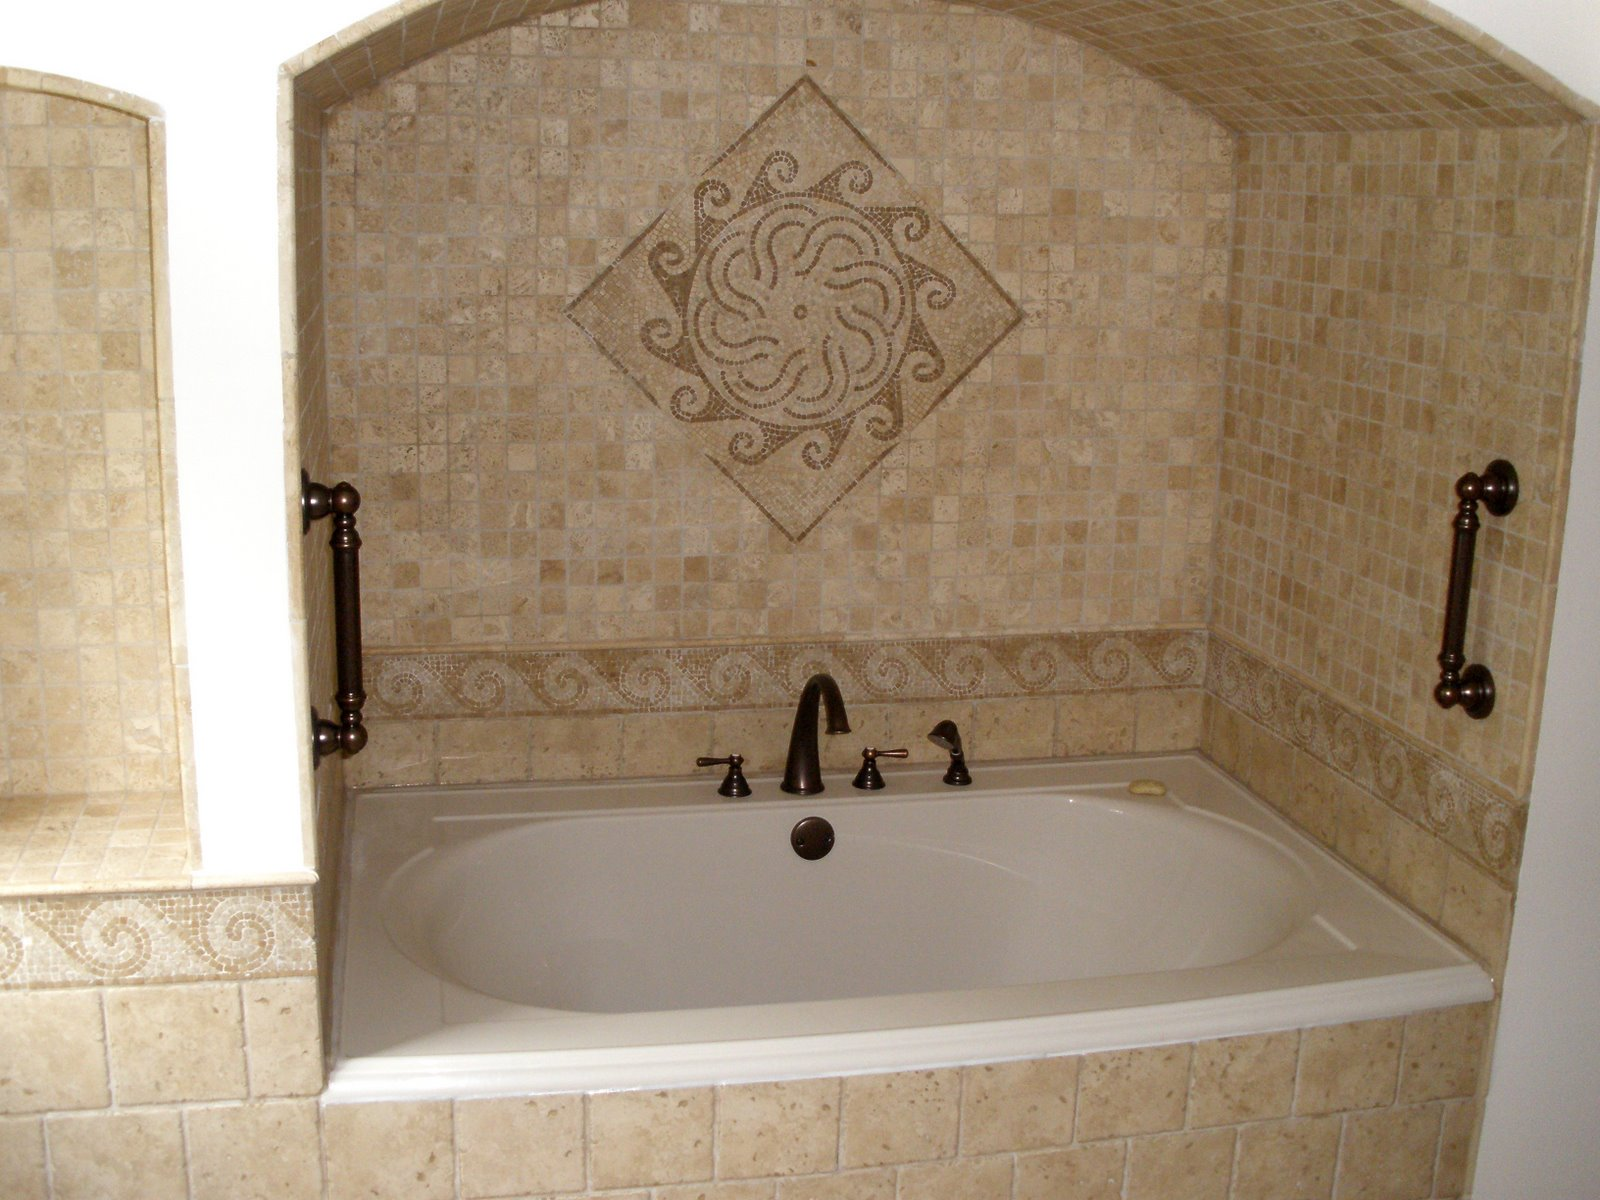 Bathroom Tile Designs. Bathroom Tile Designs F - Deltasport.co